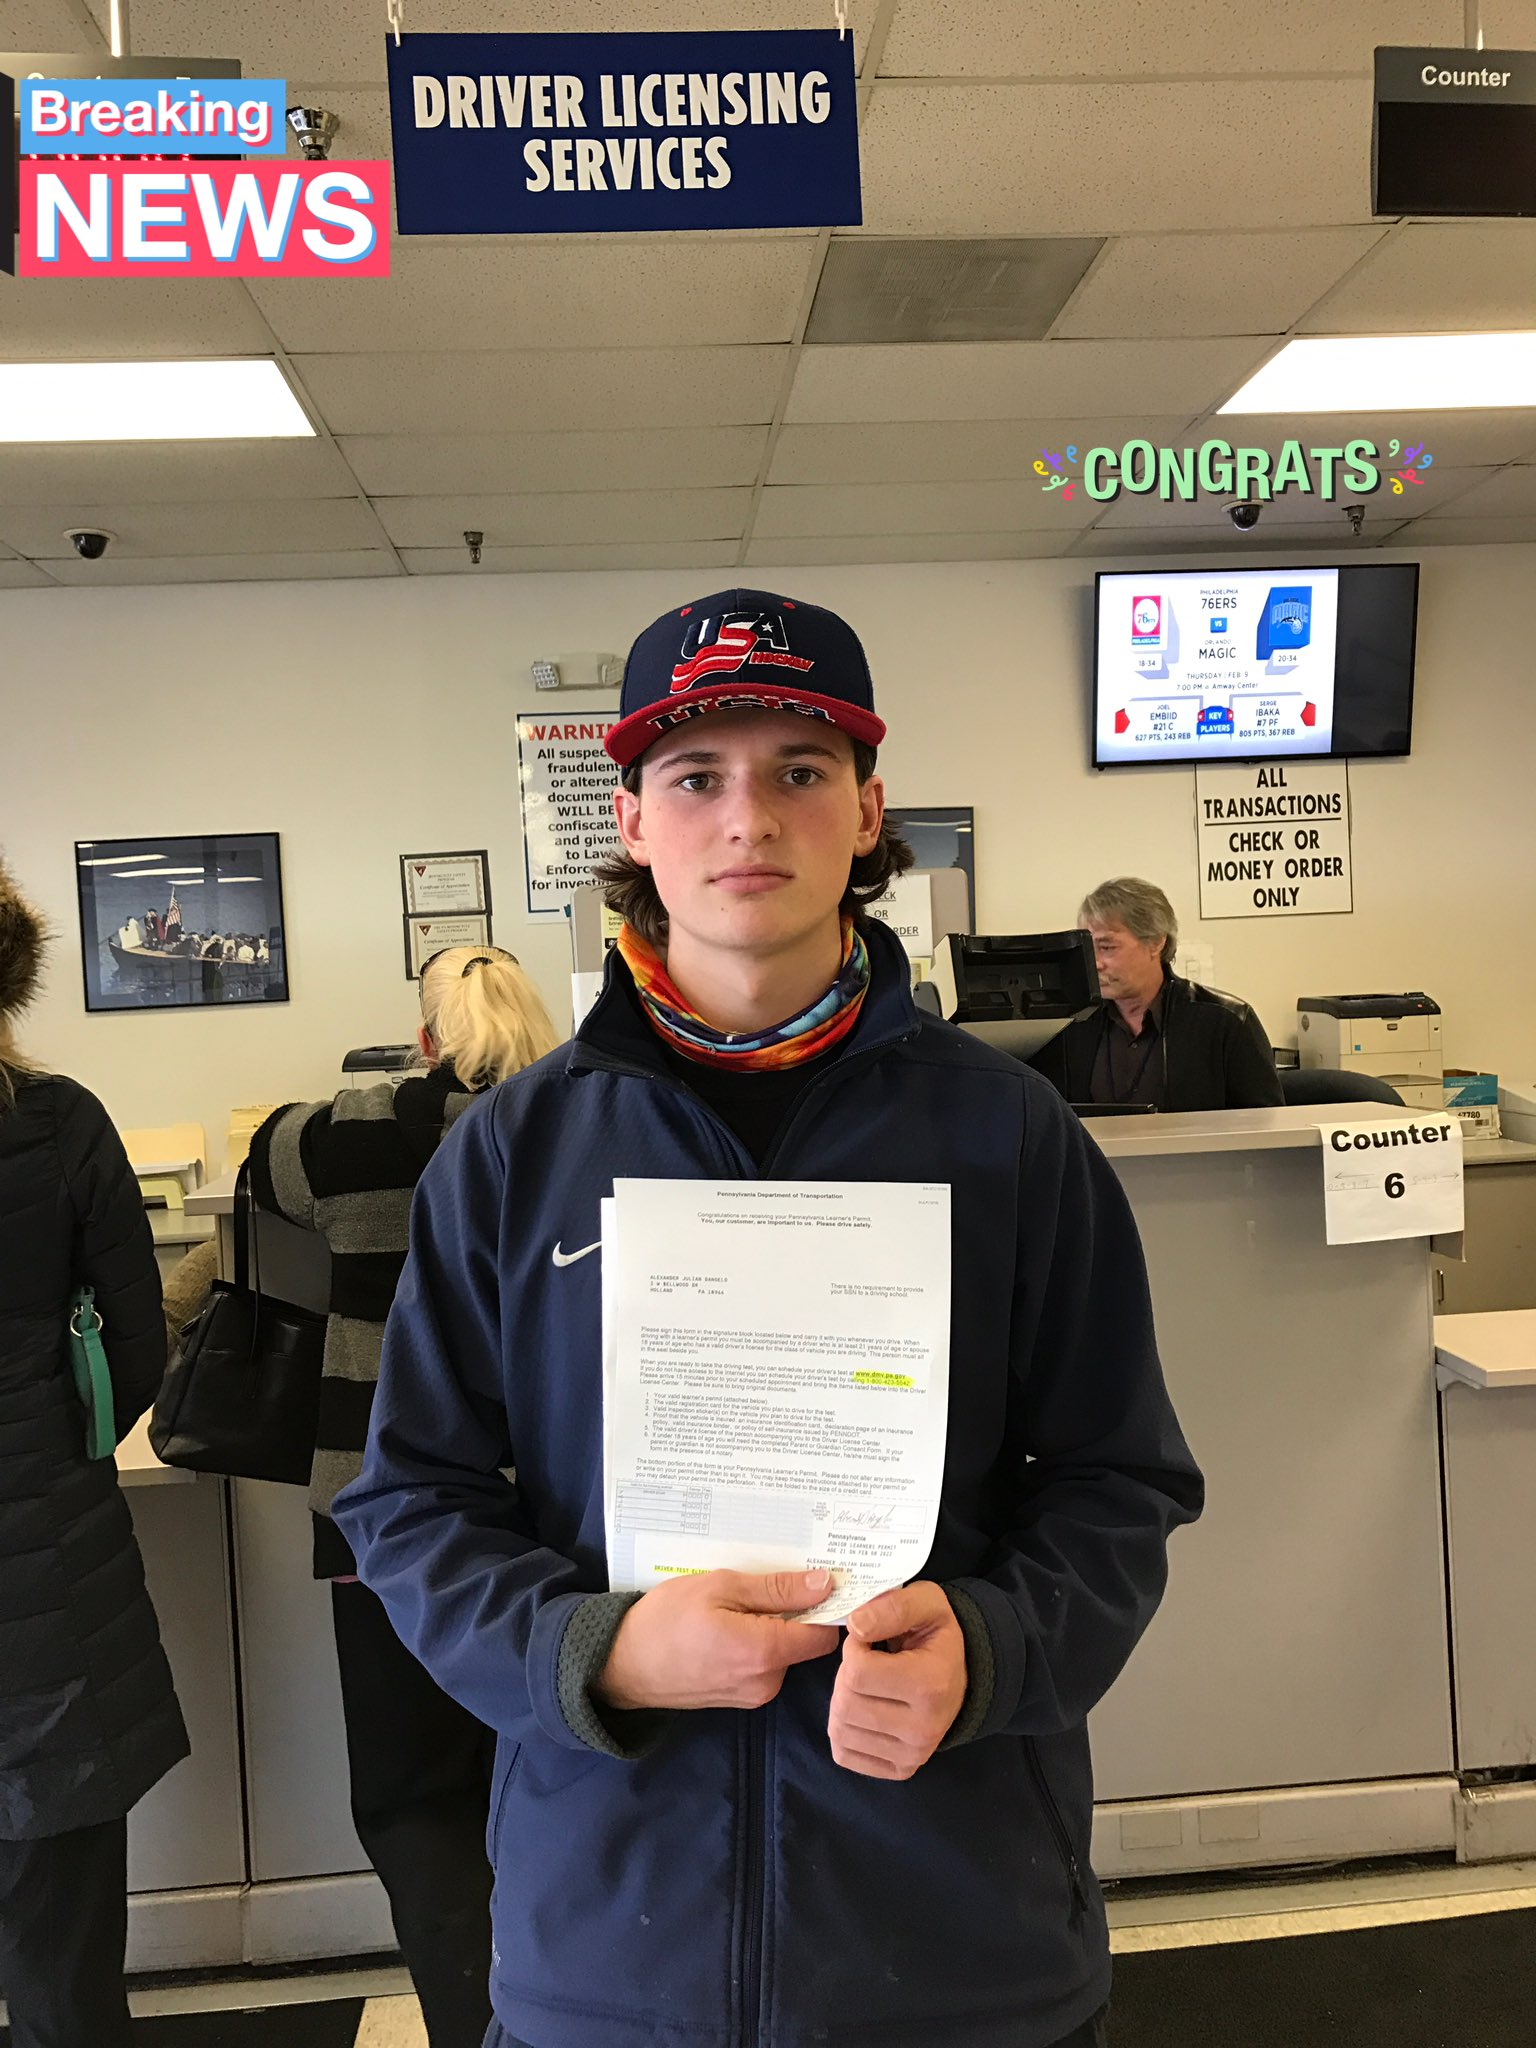 Happy birthday &I congrats to the newest driver in our home - Alex D\Angelo!